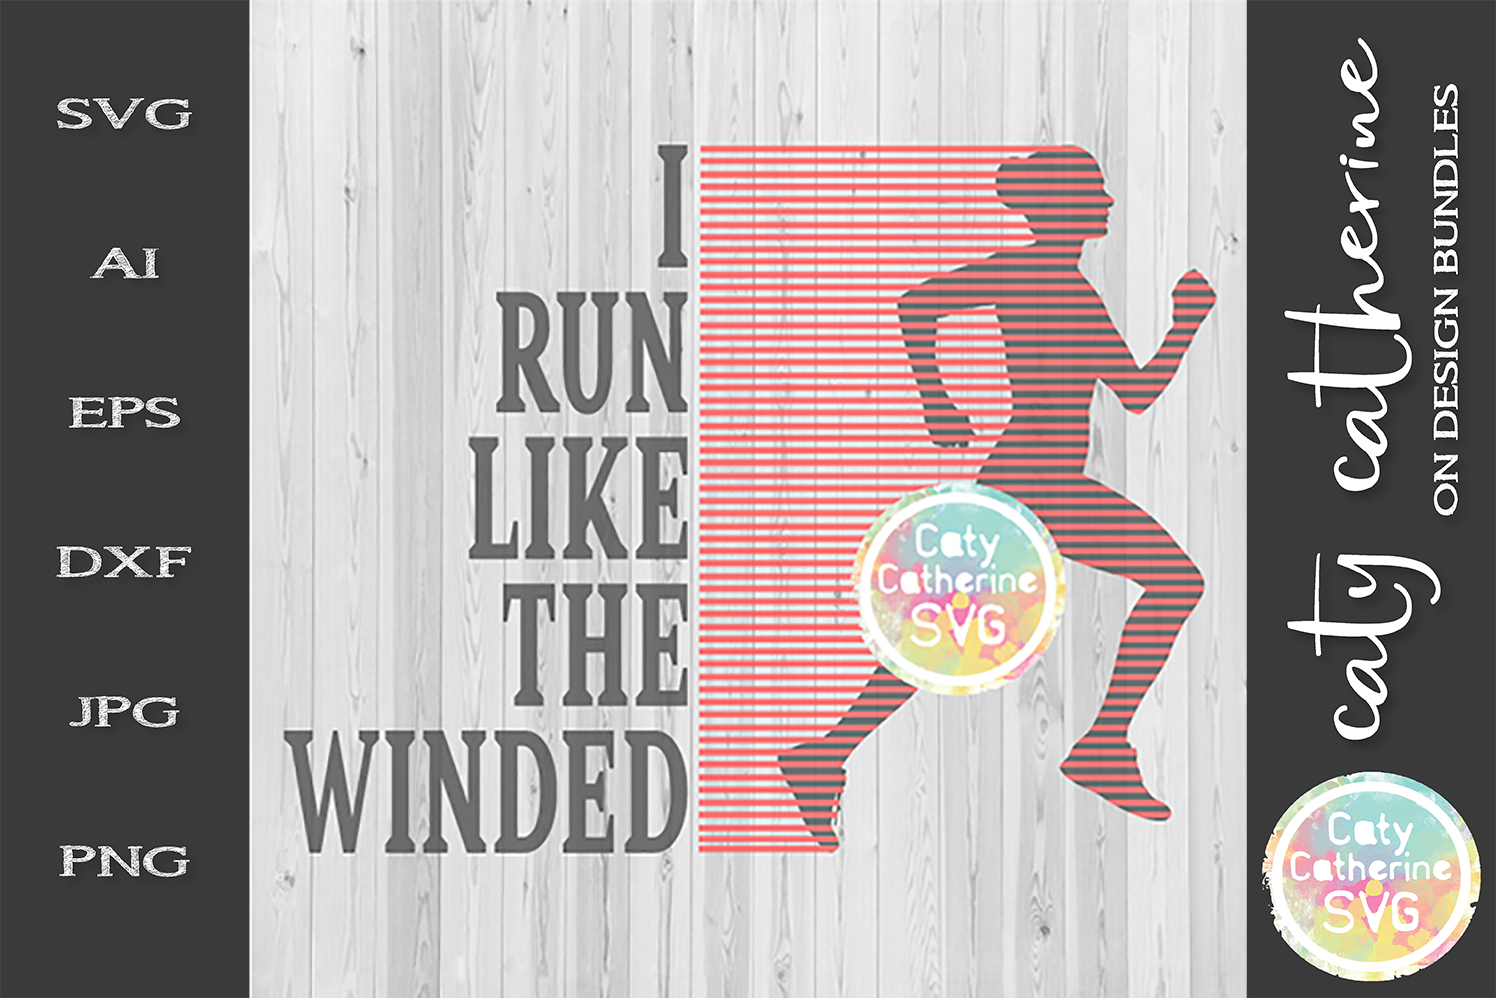 I Run Like The Winded SVG Cut File example image 1